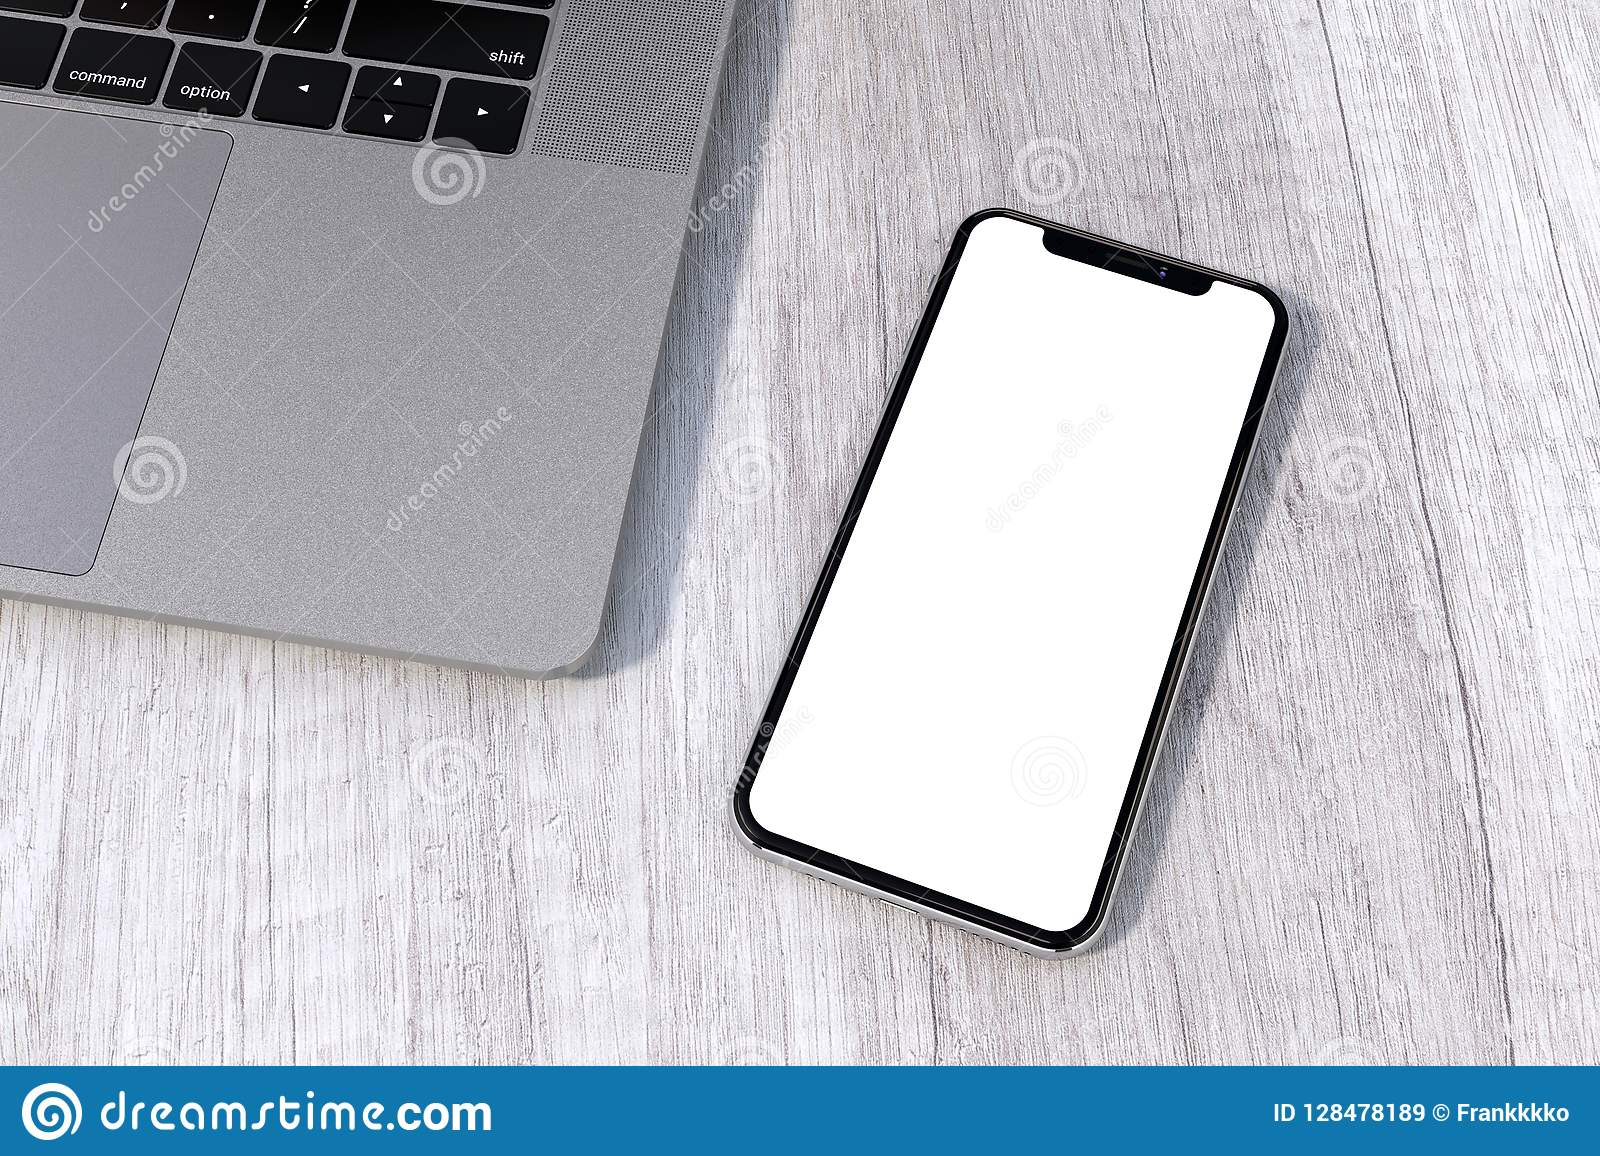 Iphone Xs Silver Style Smartphone Mock Up Perspective On Table Stock